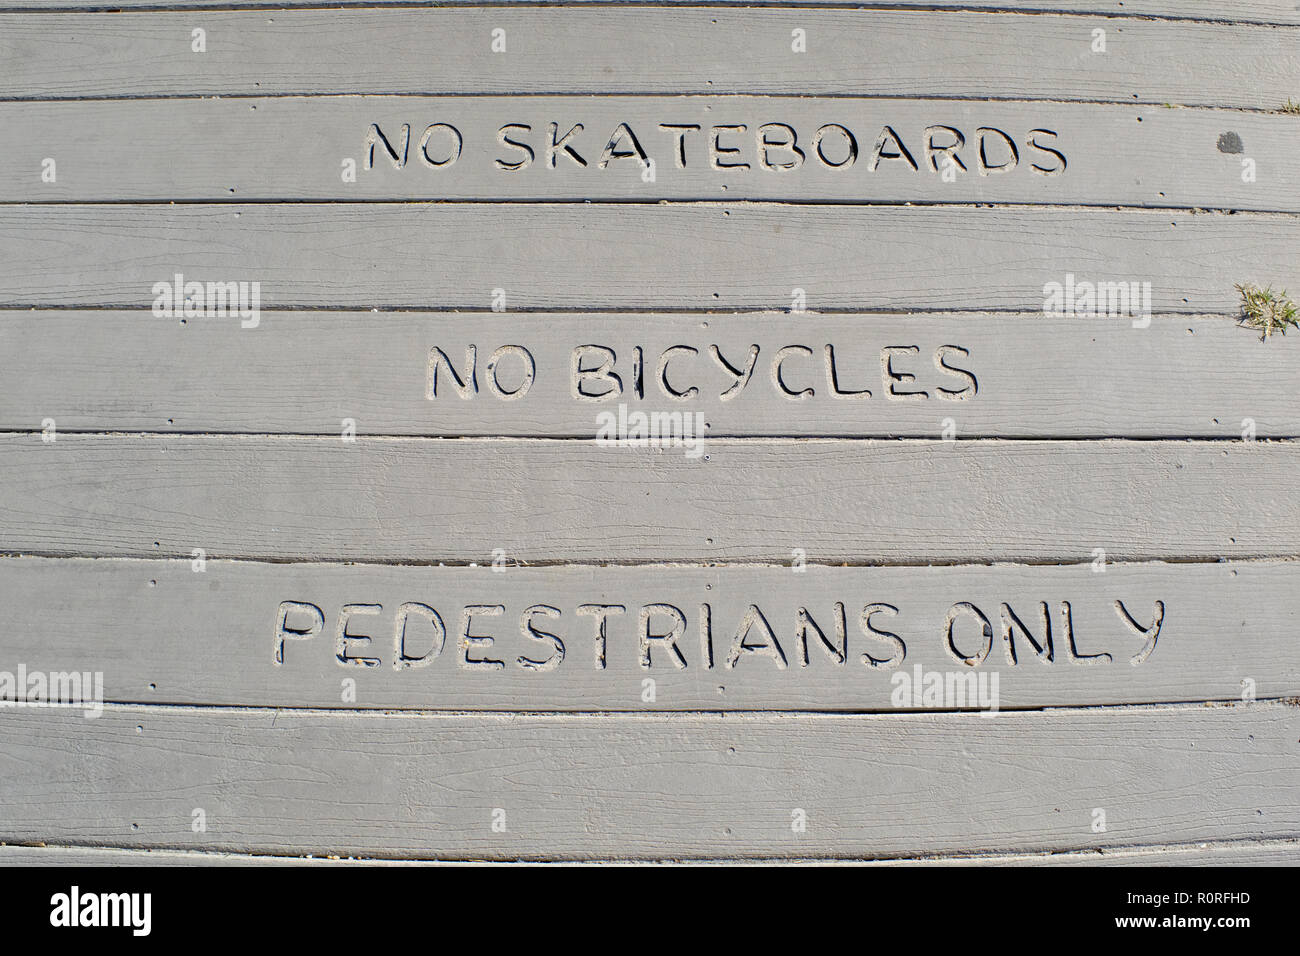 Restrictions carved into a boardwalk - No Skateboards, no bicyckes, pedestrians only - Stock Image